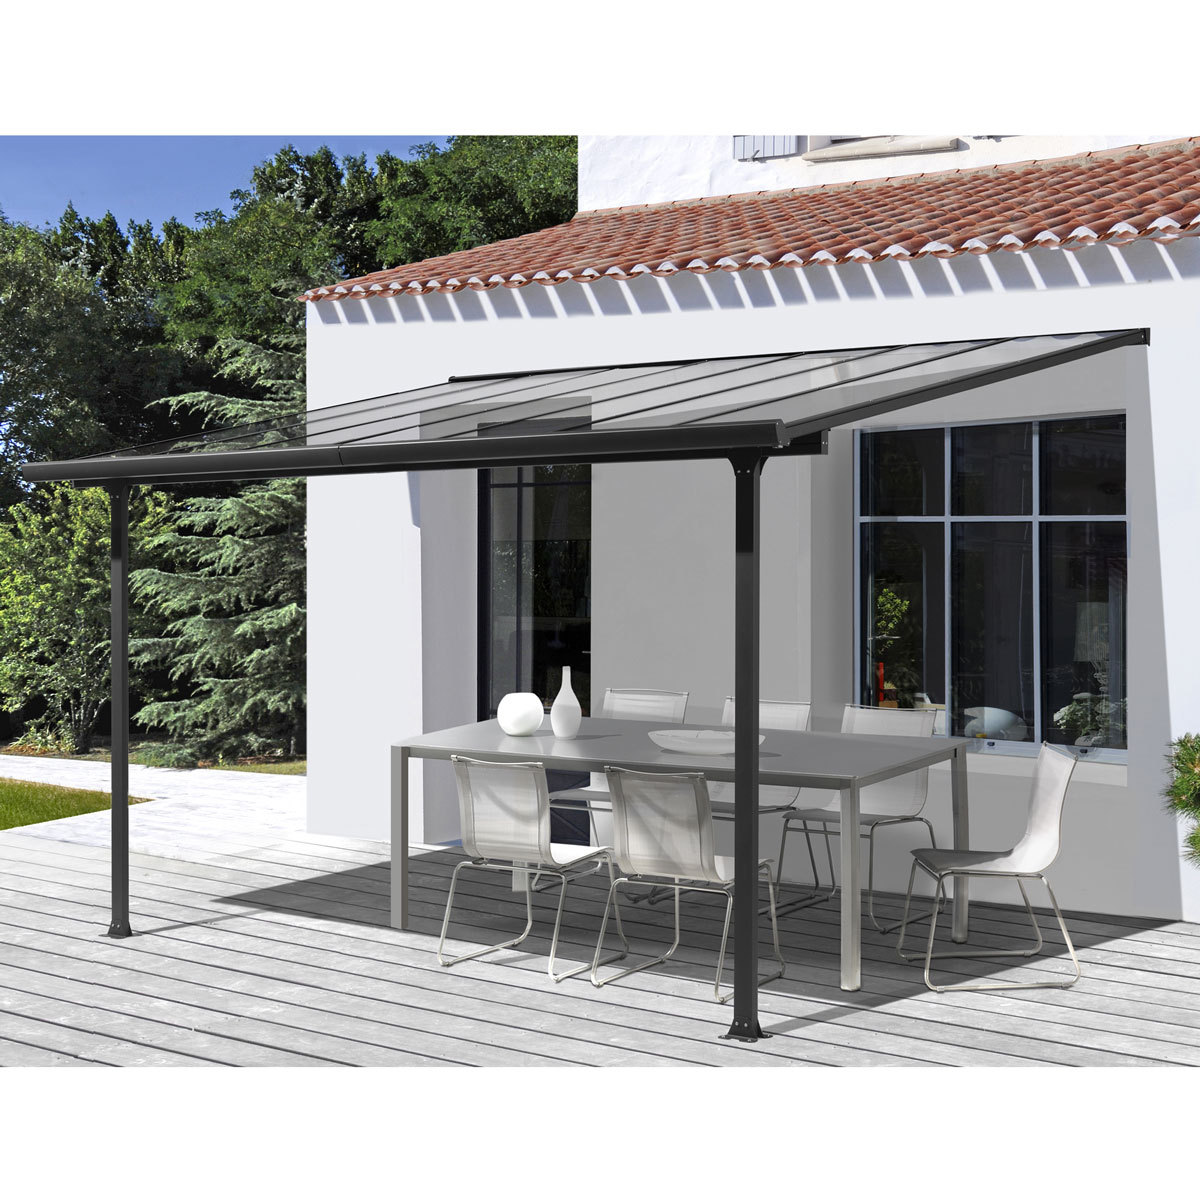 pergola en aluminium et polycarbonate 3x3 m abrirama tt3030al abris de jardin en bois. Black Bedroom Furniture Sets. Home Design Ideas